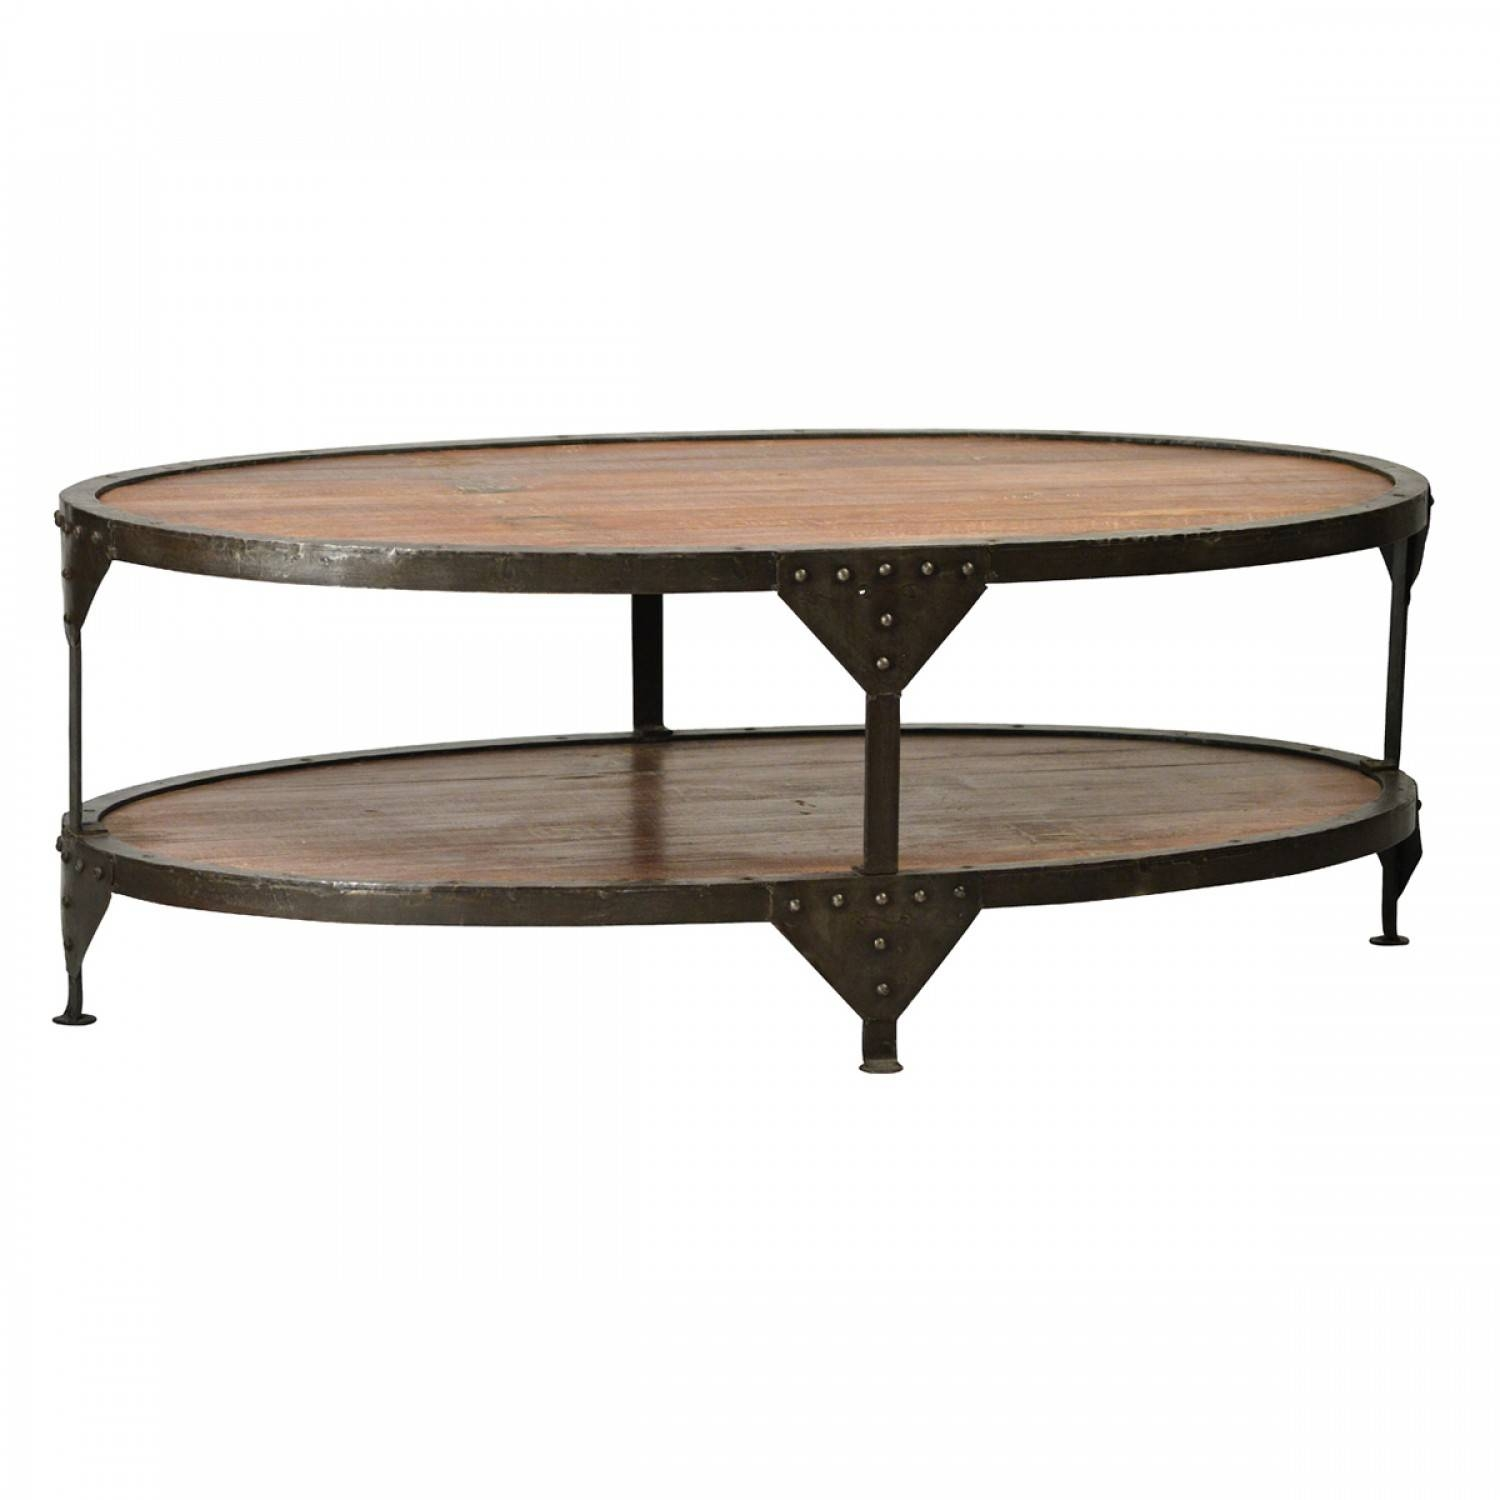 Furniture: Small Oval Coffee Table | Target Living Room Tables pertaining to Oval Glass Coffee Tables (Image 15 of 30)